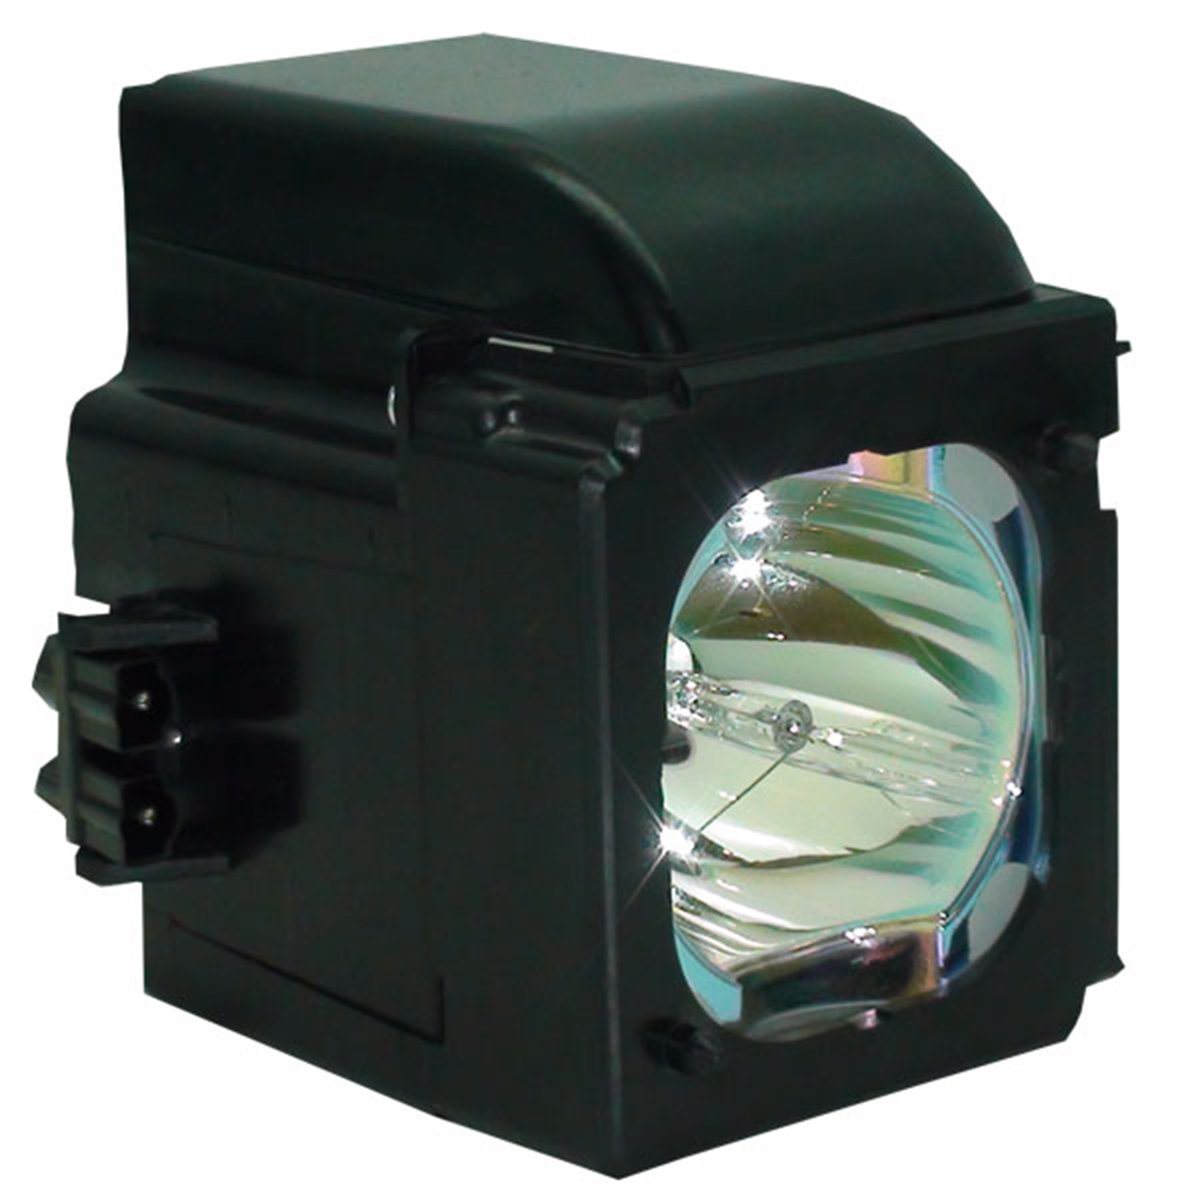 HL50A650C1F AuraBeam BP96-01653A Economy TV Replacement Lamp with Housing for Samsung HLT5075SX//XAA HL61A650 HL56A650C1F